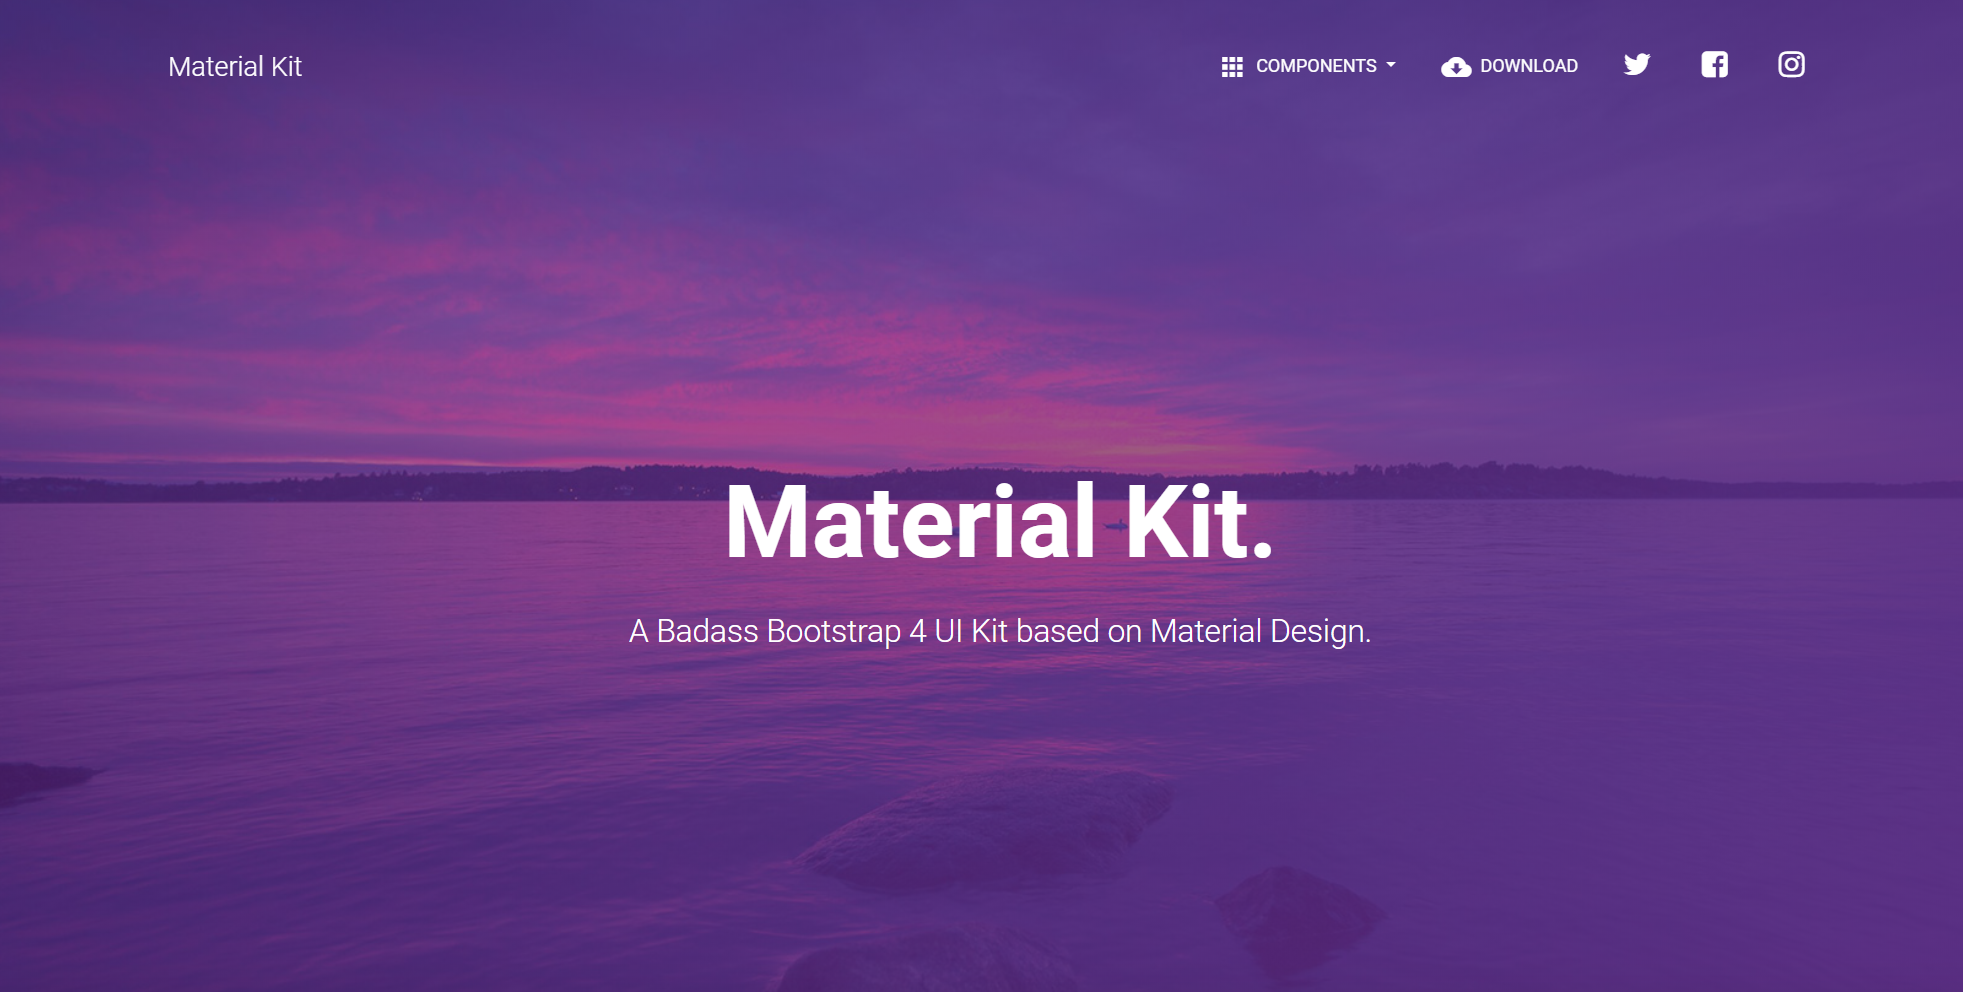 15 Best Free Bootstrap UI Kits in 2019 to Simplify Your Design